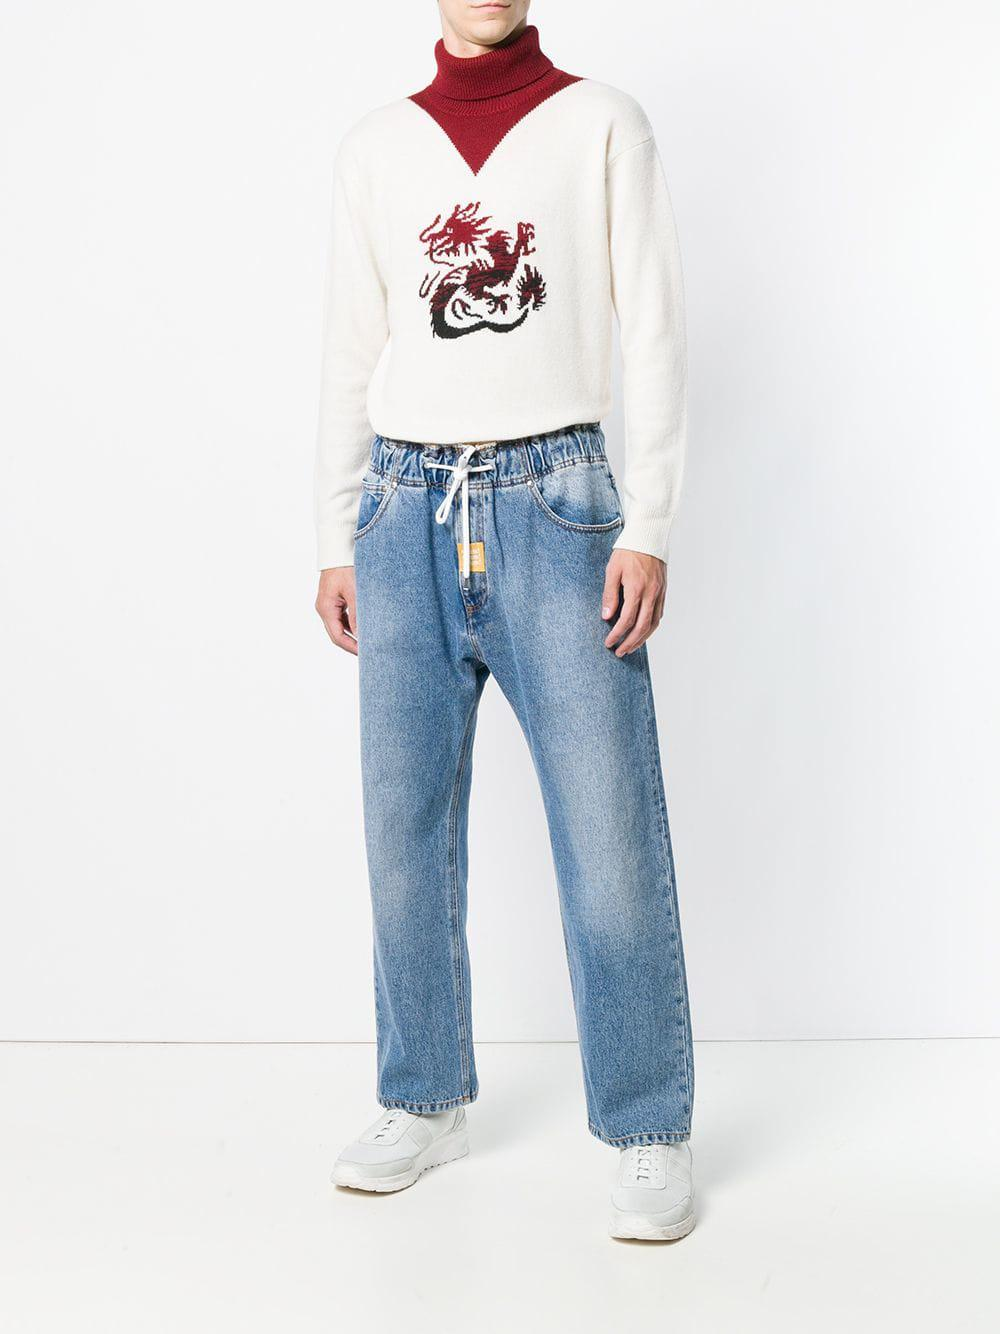 5cdd3988a97 Lyst - MSGM Wide-leg Jeans in Blue for Men - Save 12%